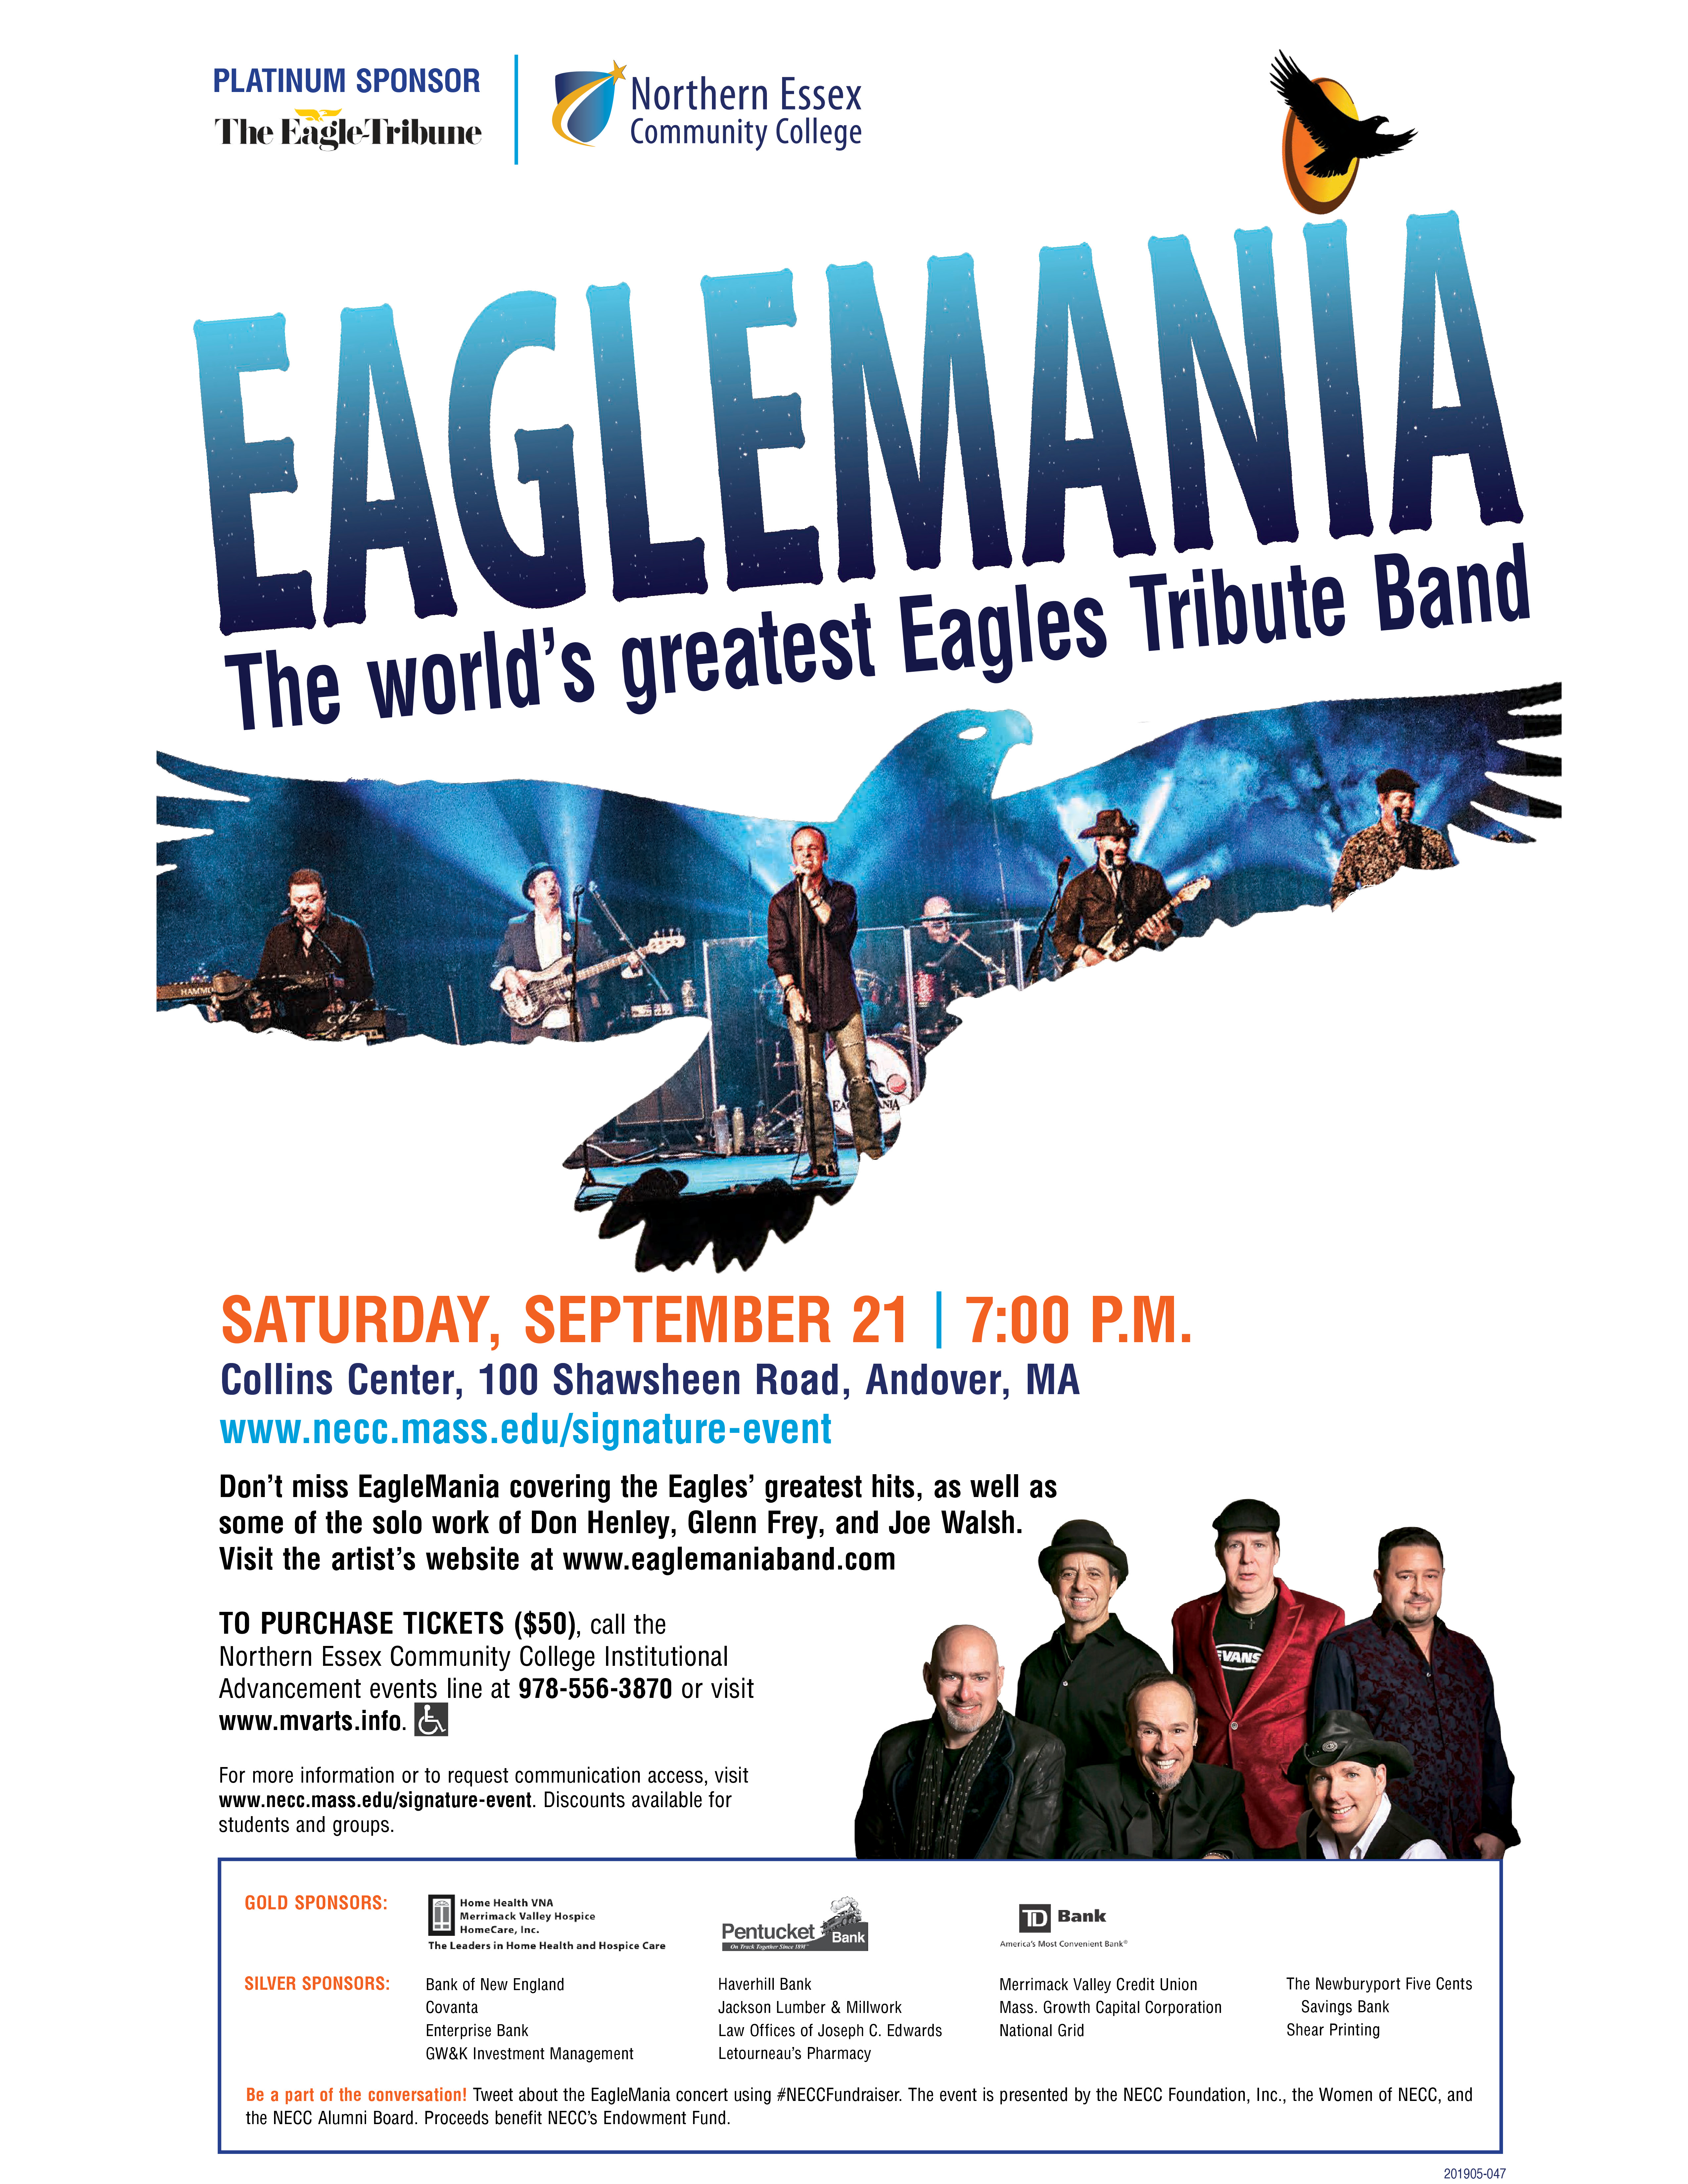 201905-047-Signature-Event-Eaglemania-poster.jpg